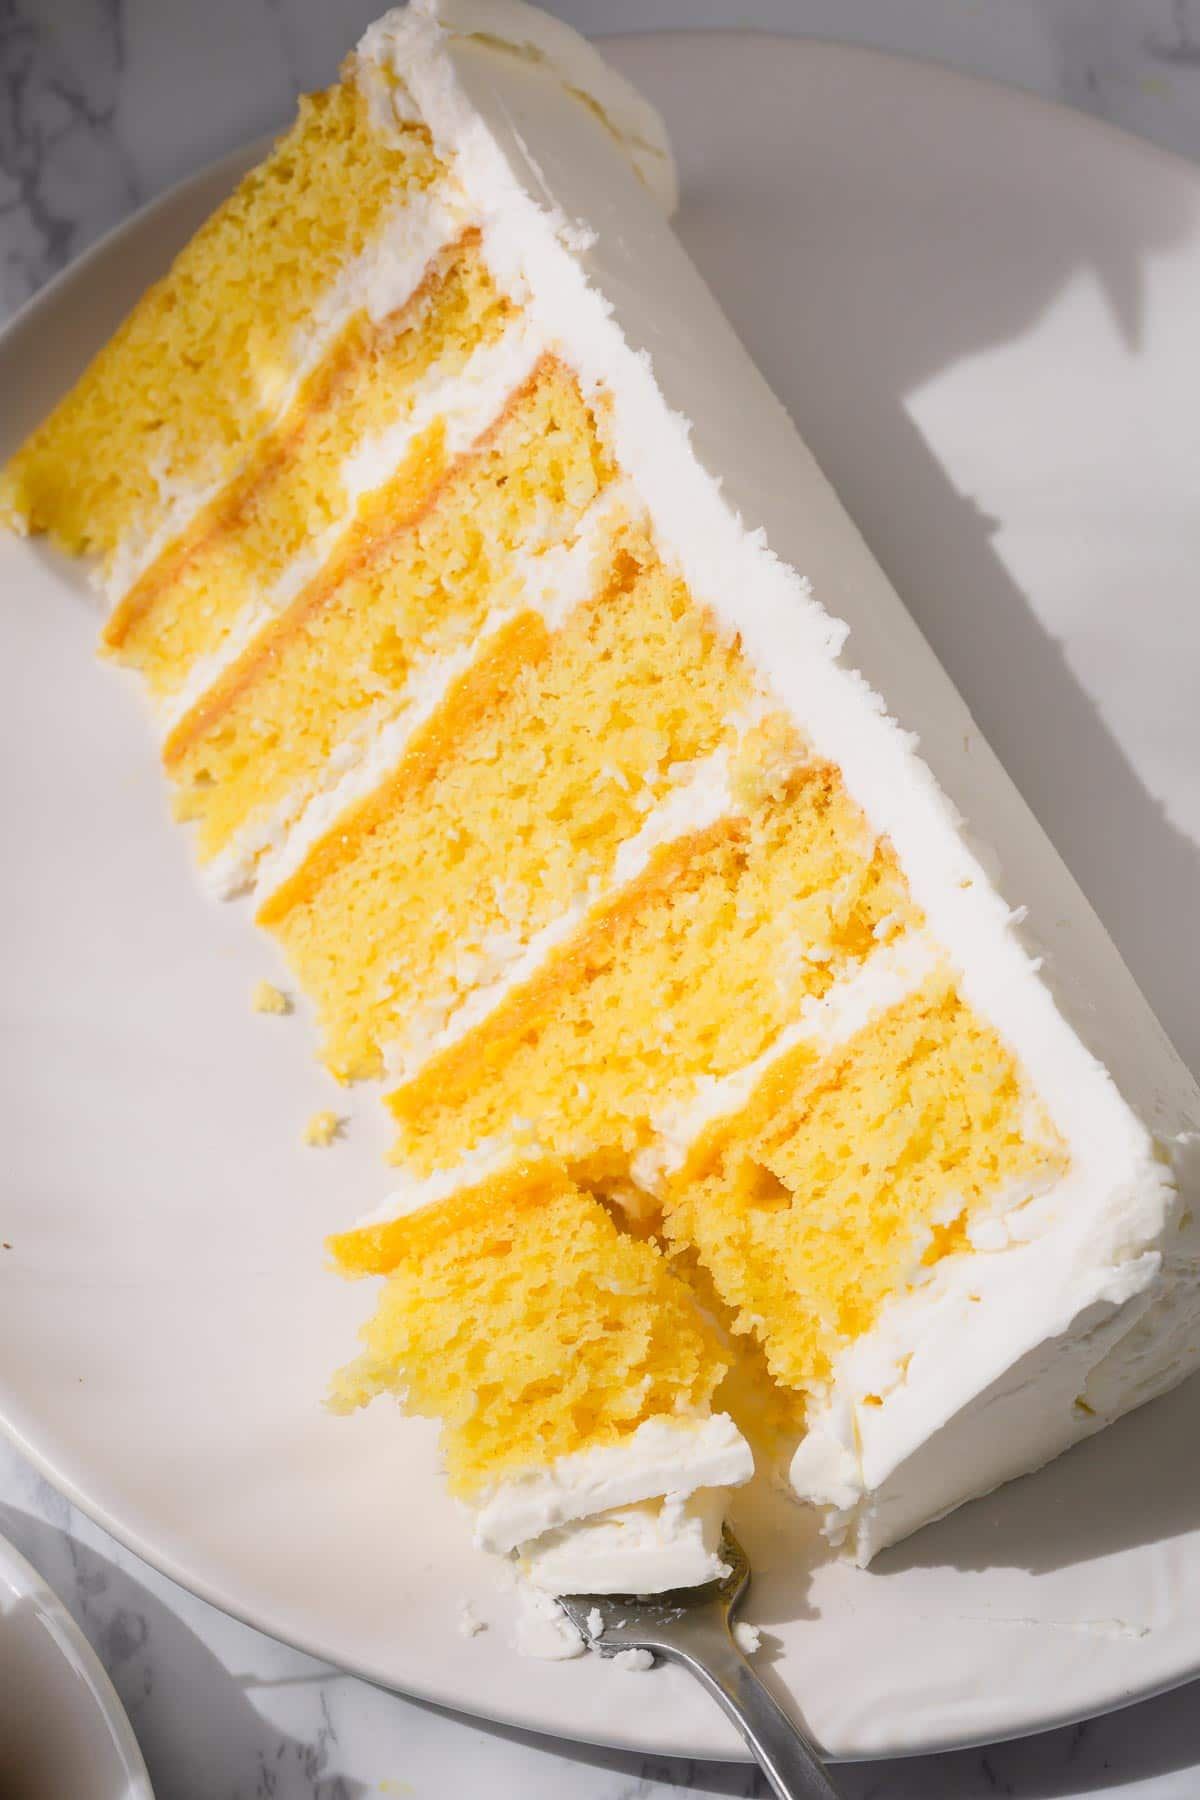 Slice of pineapple layer cake on plate